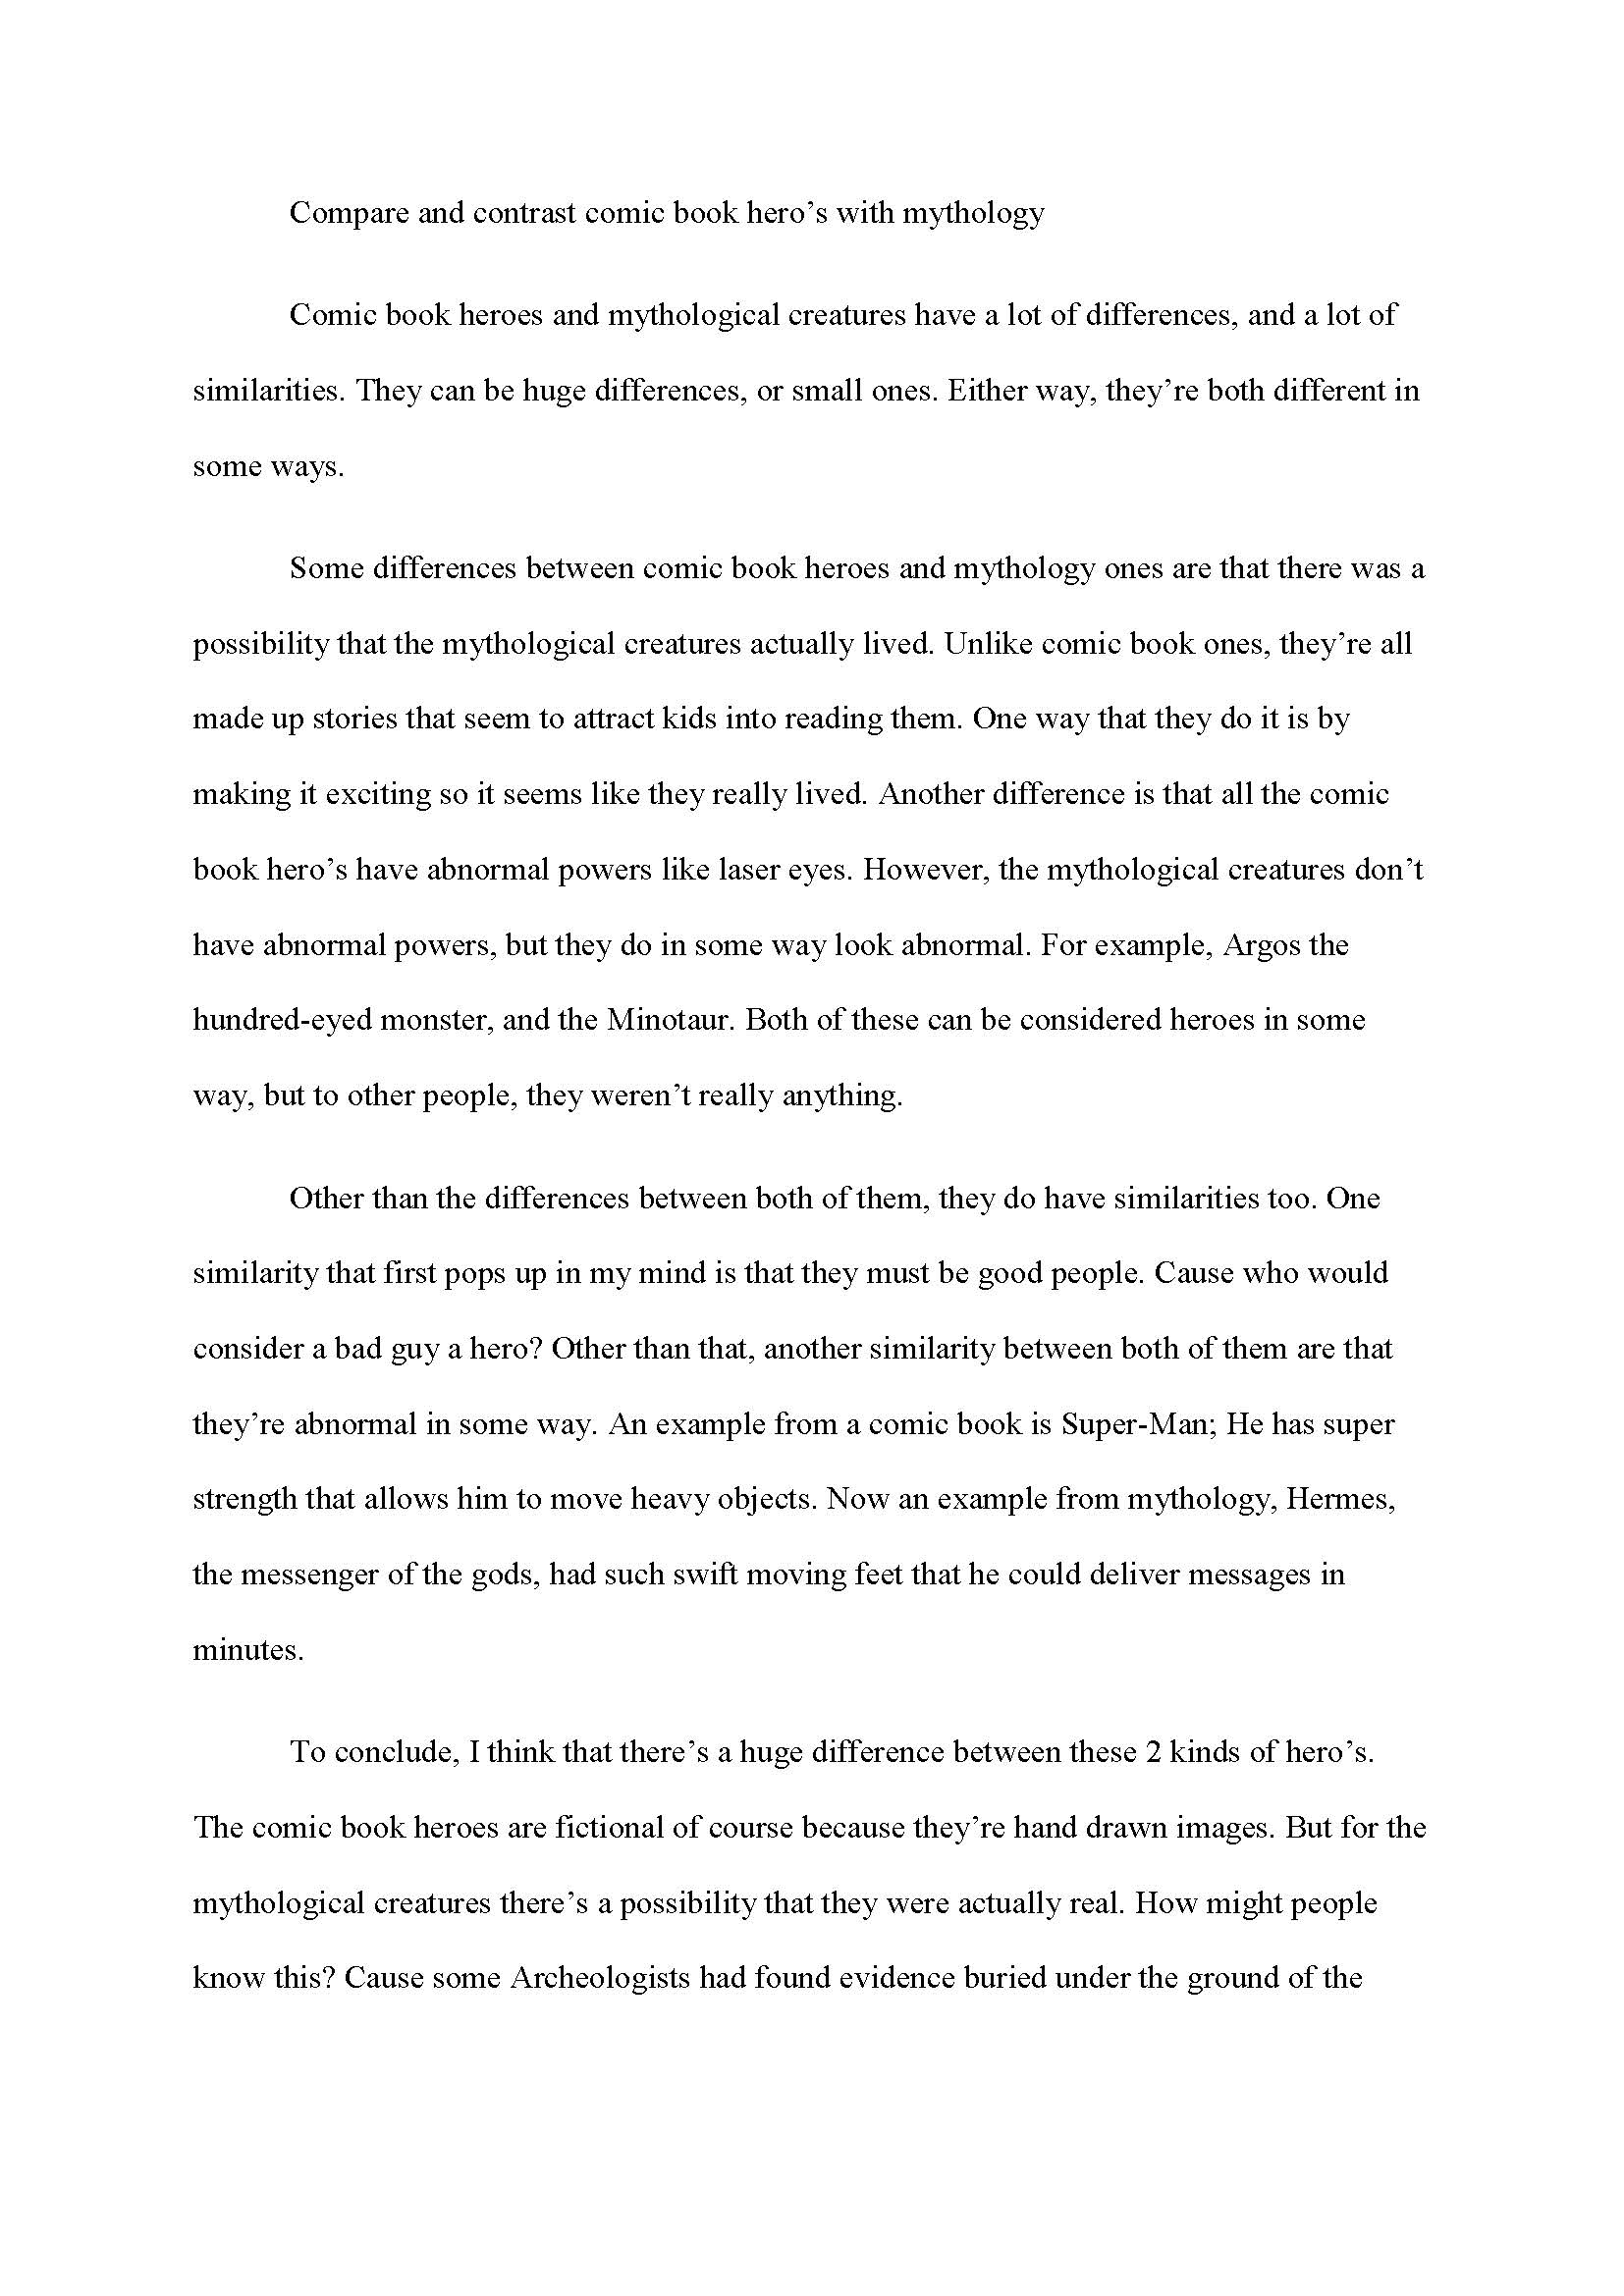 020 Compare And Contrast Essay Sample Example Uc Imposing Essays Prompt 1 6 3 Full